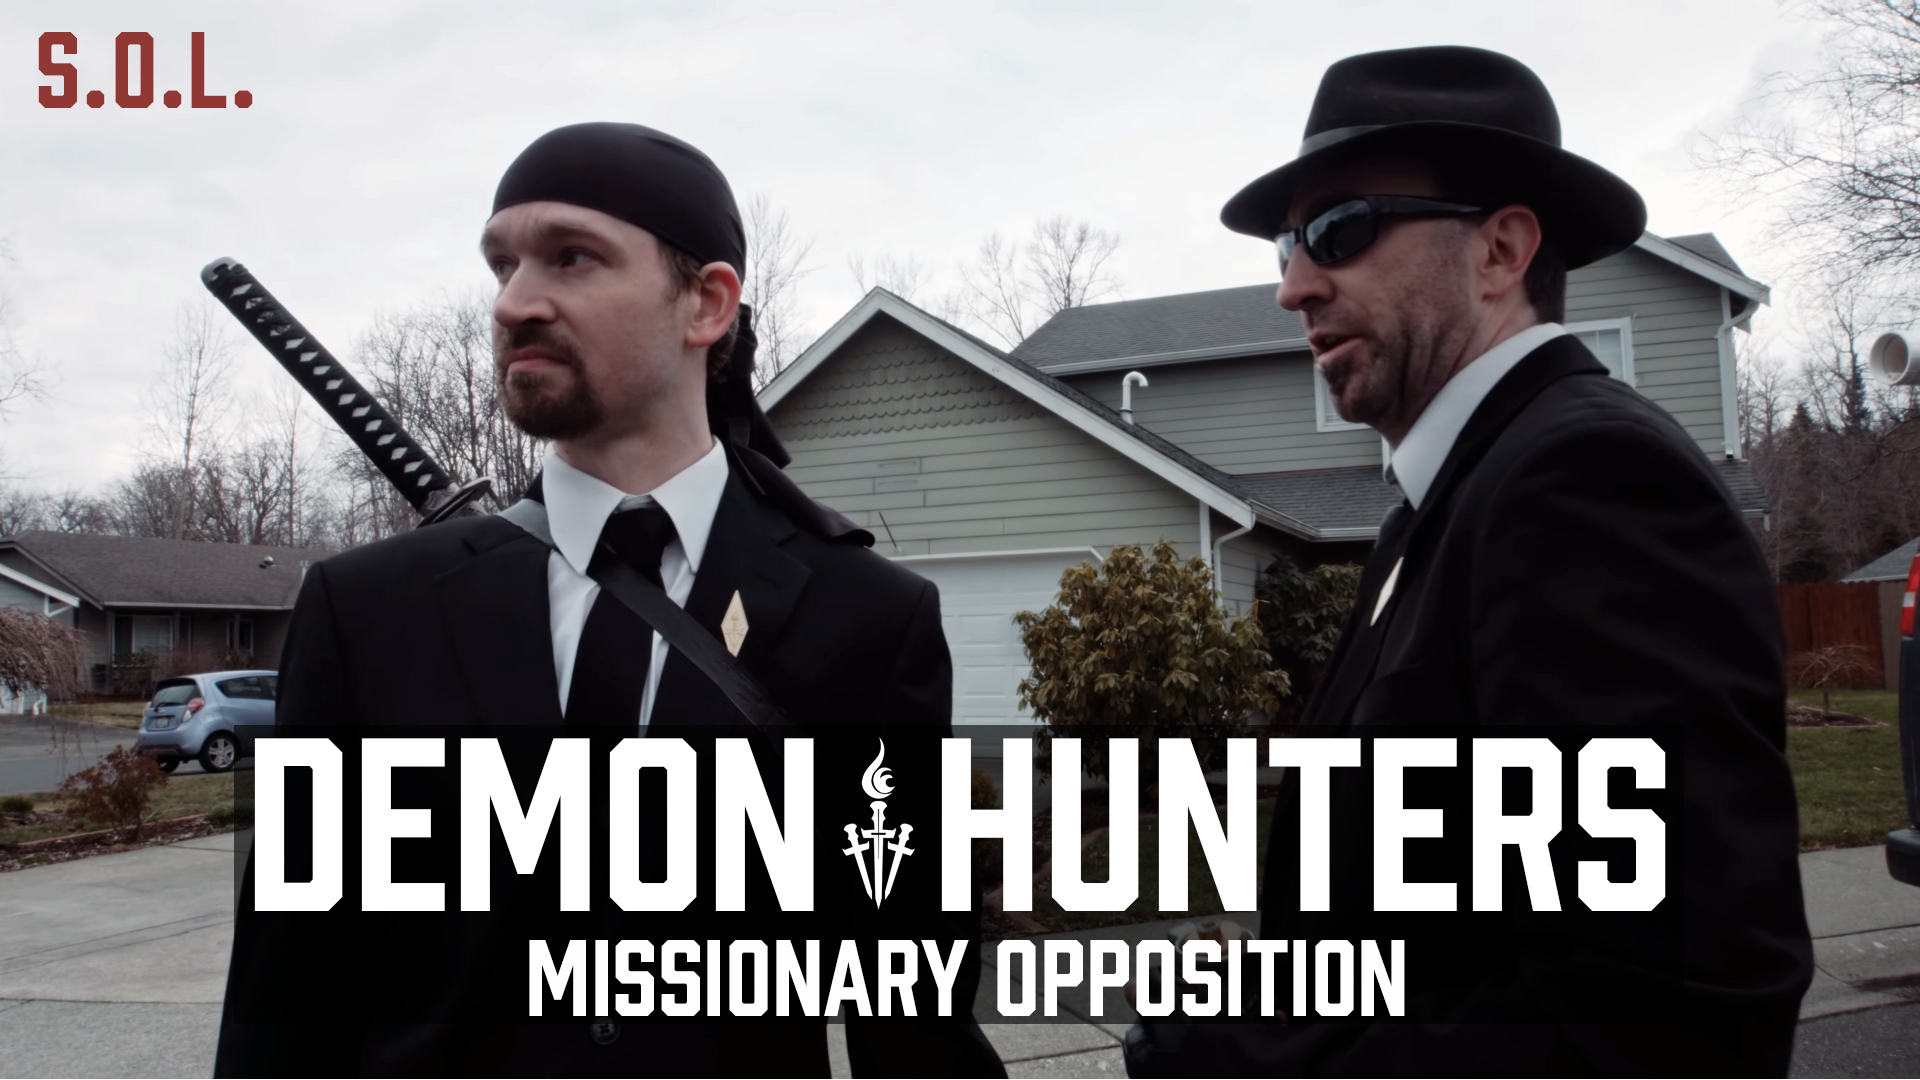 Demon Hunters: Missionary Opposition